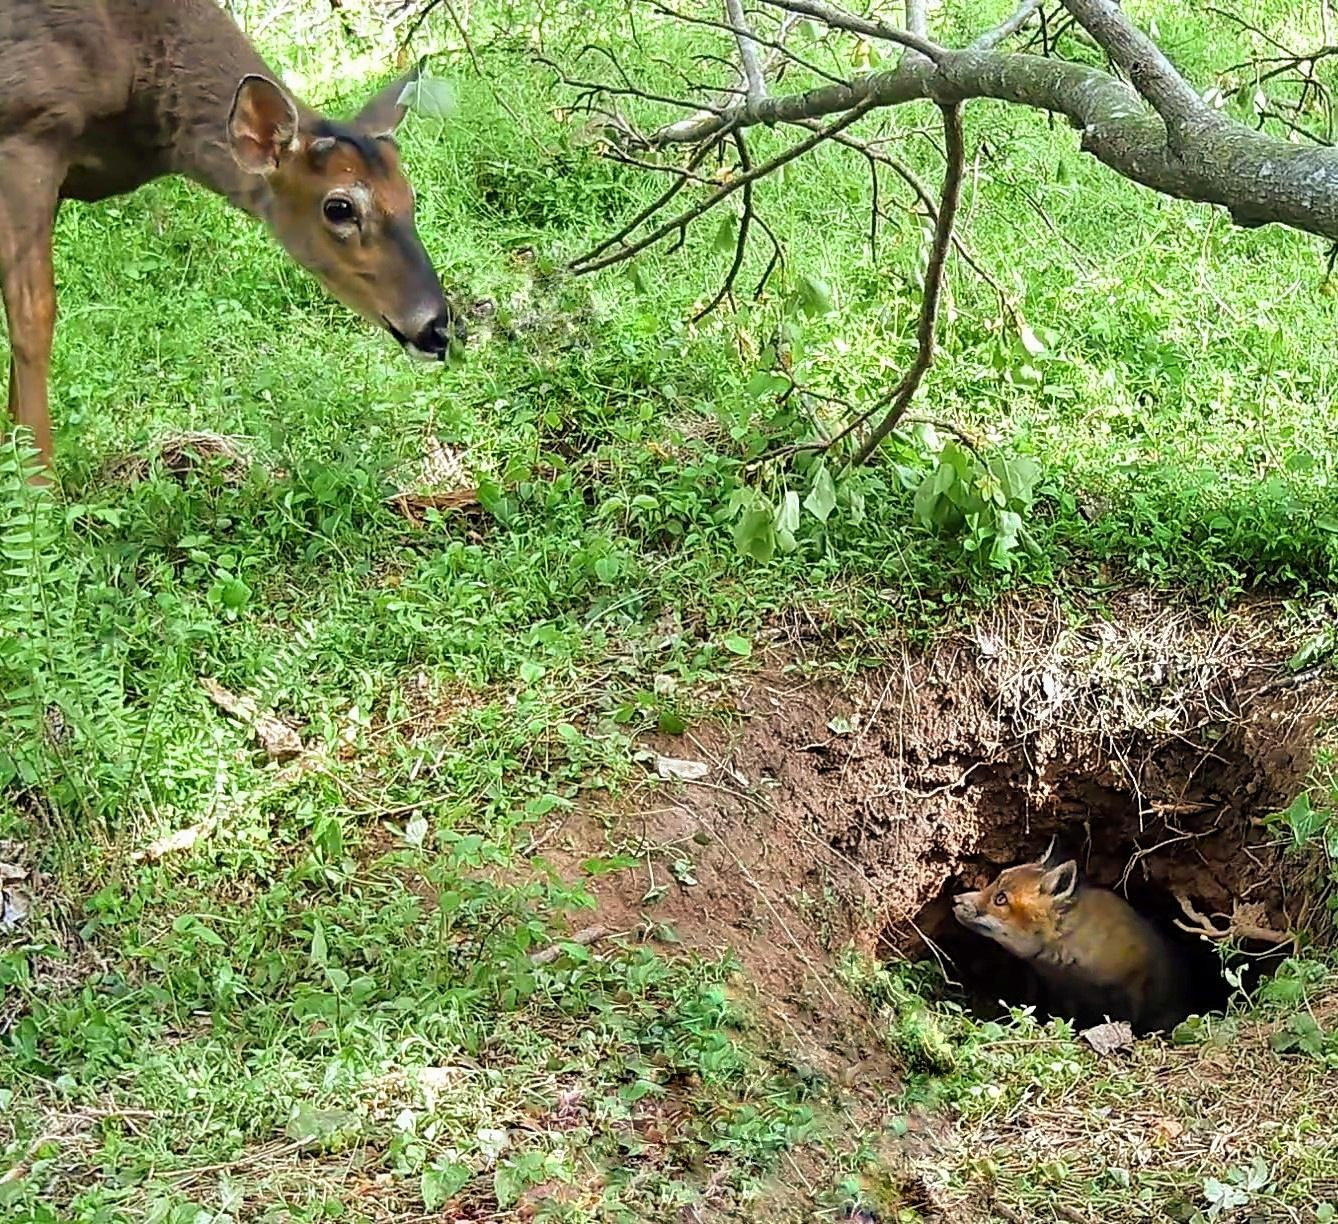 A confused deer is looking down at a fox in a burrow, who's looking back at the deer